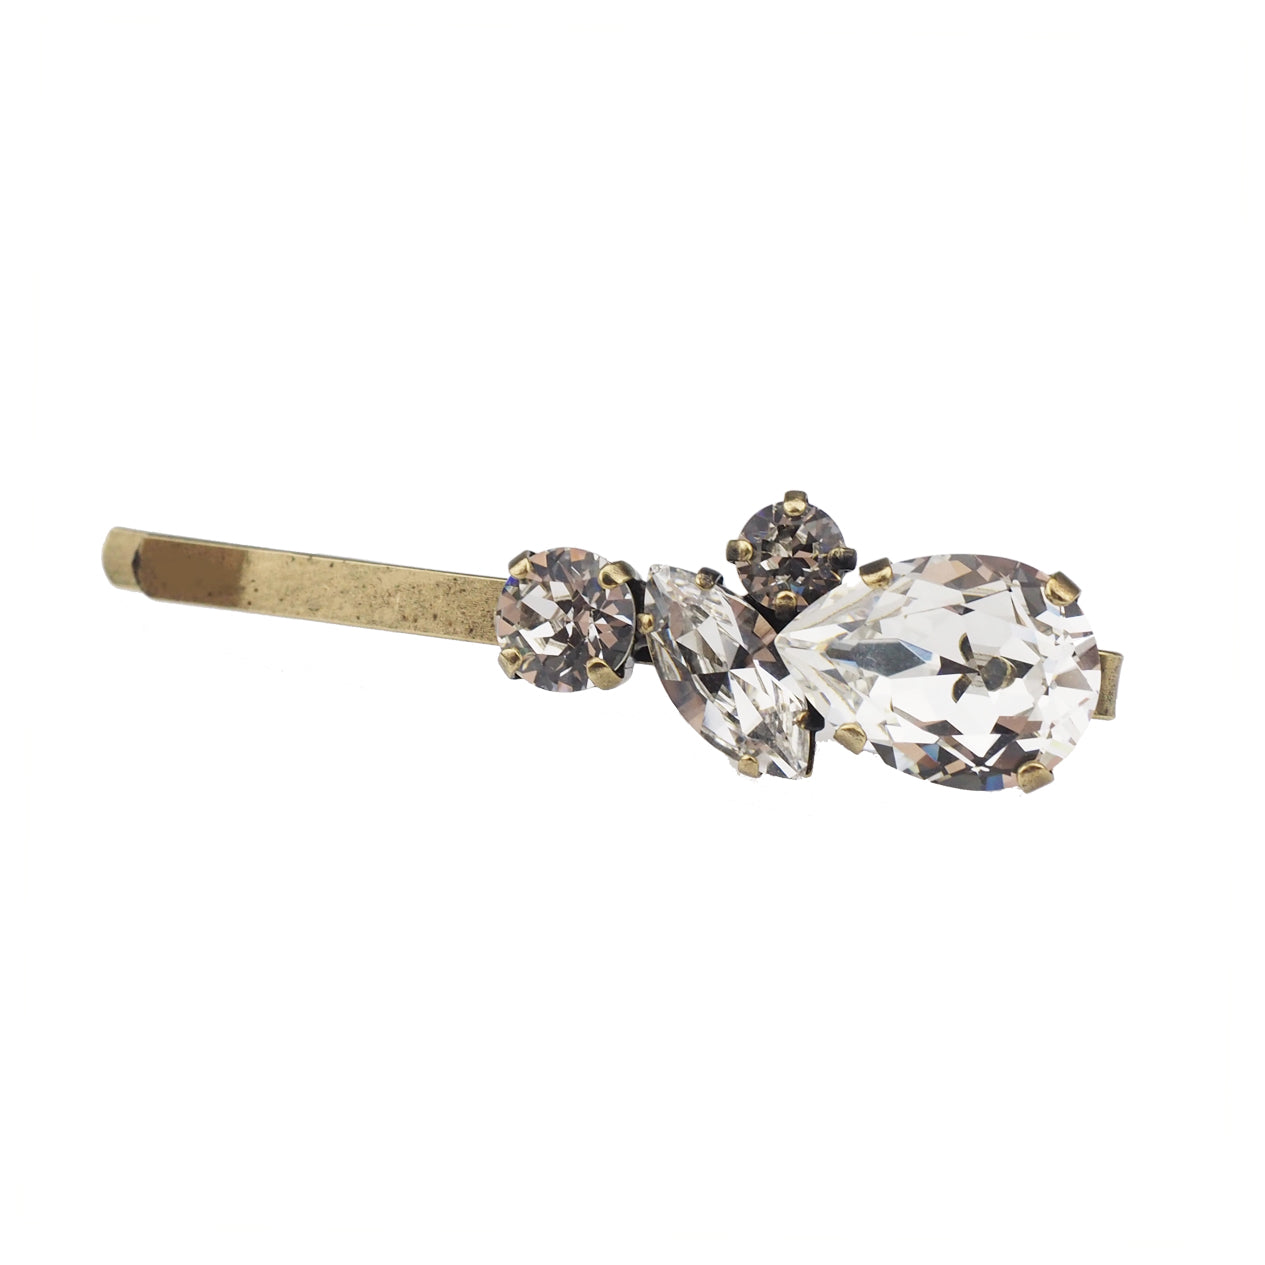 Justice Hair slide - Clear